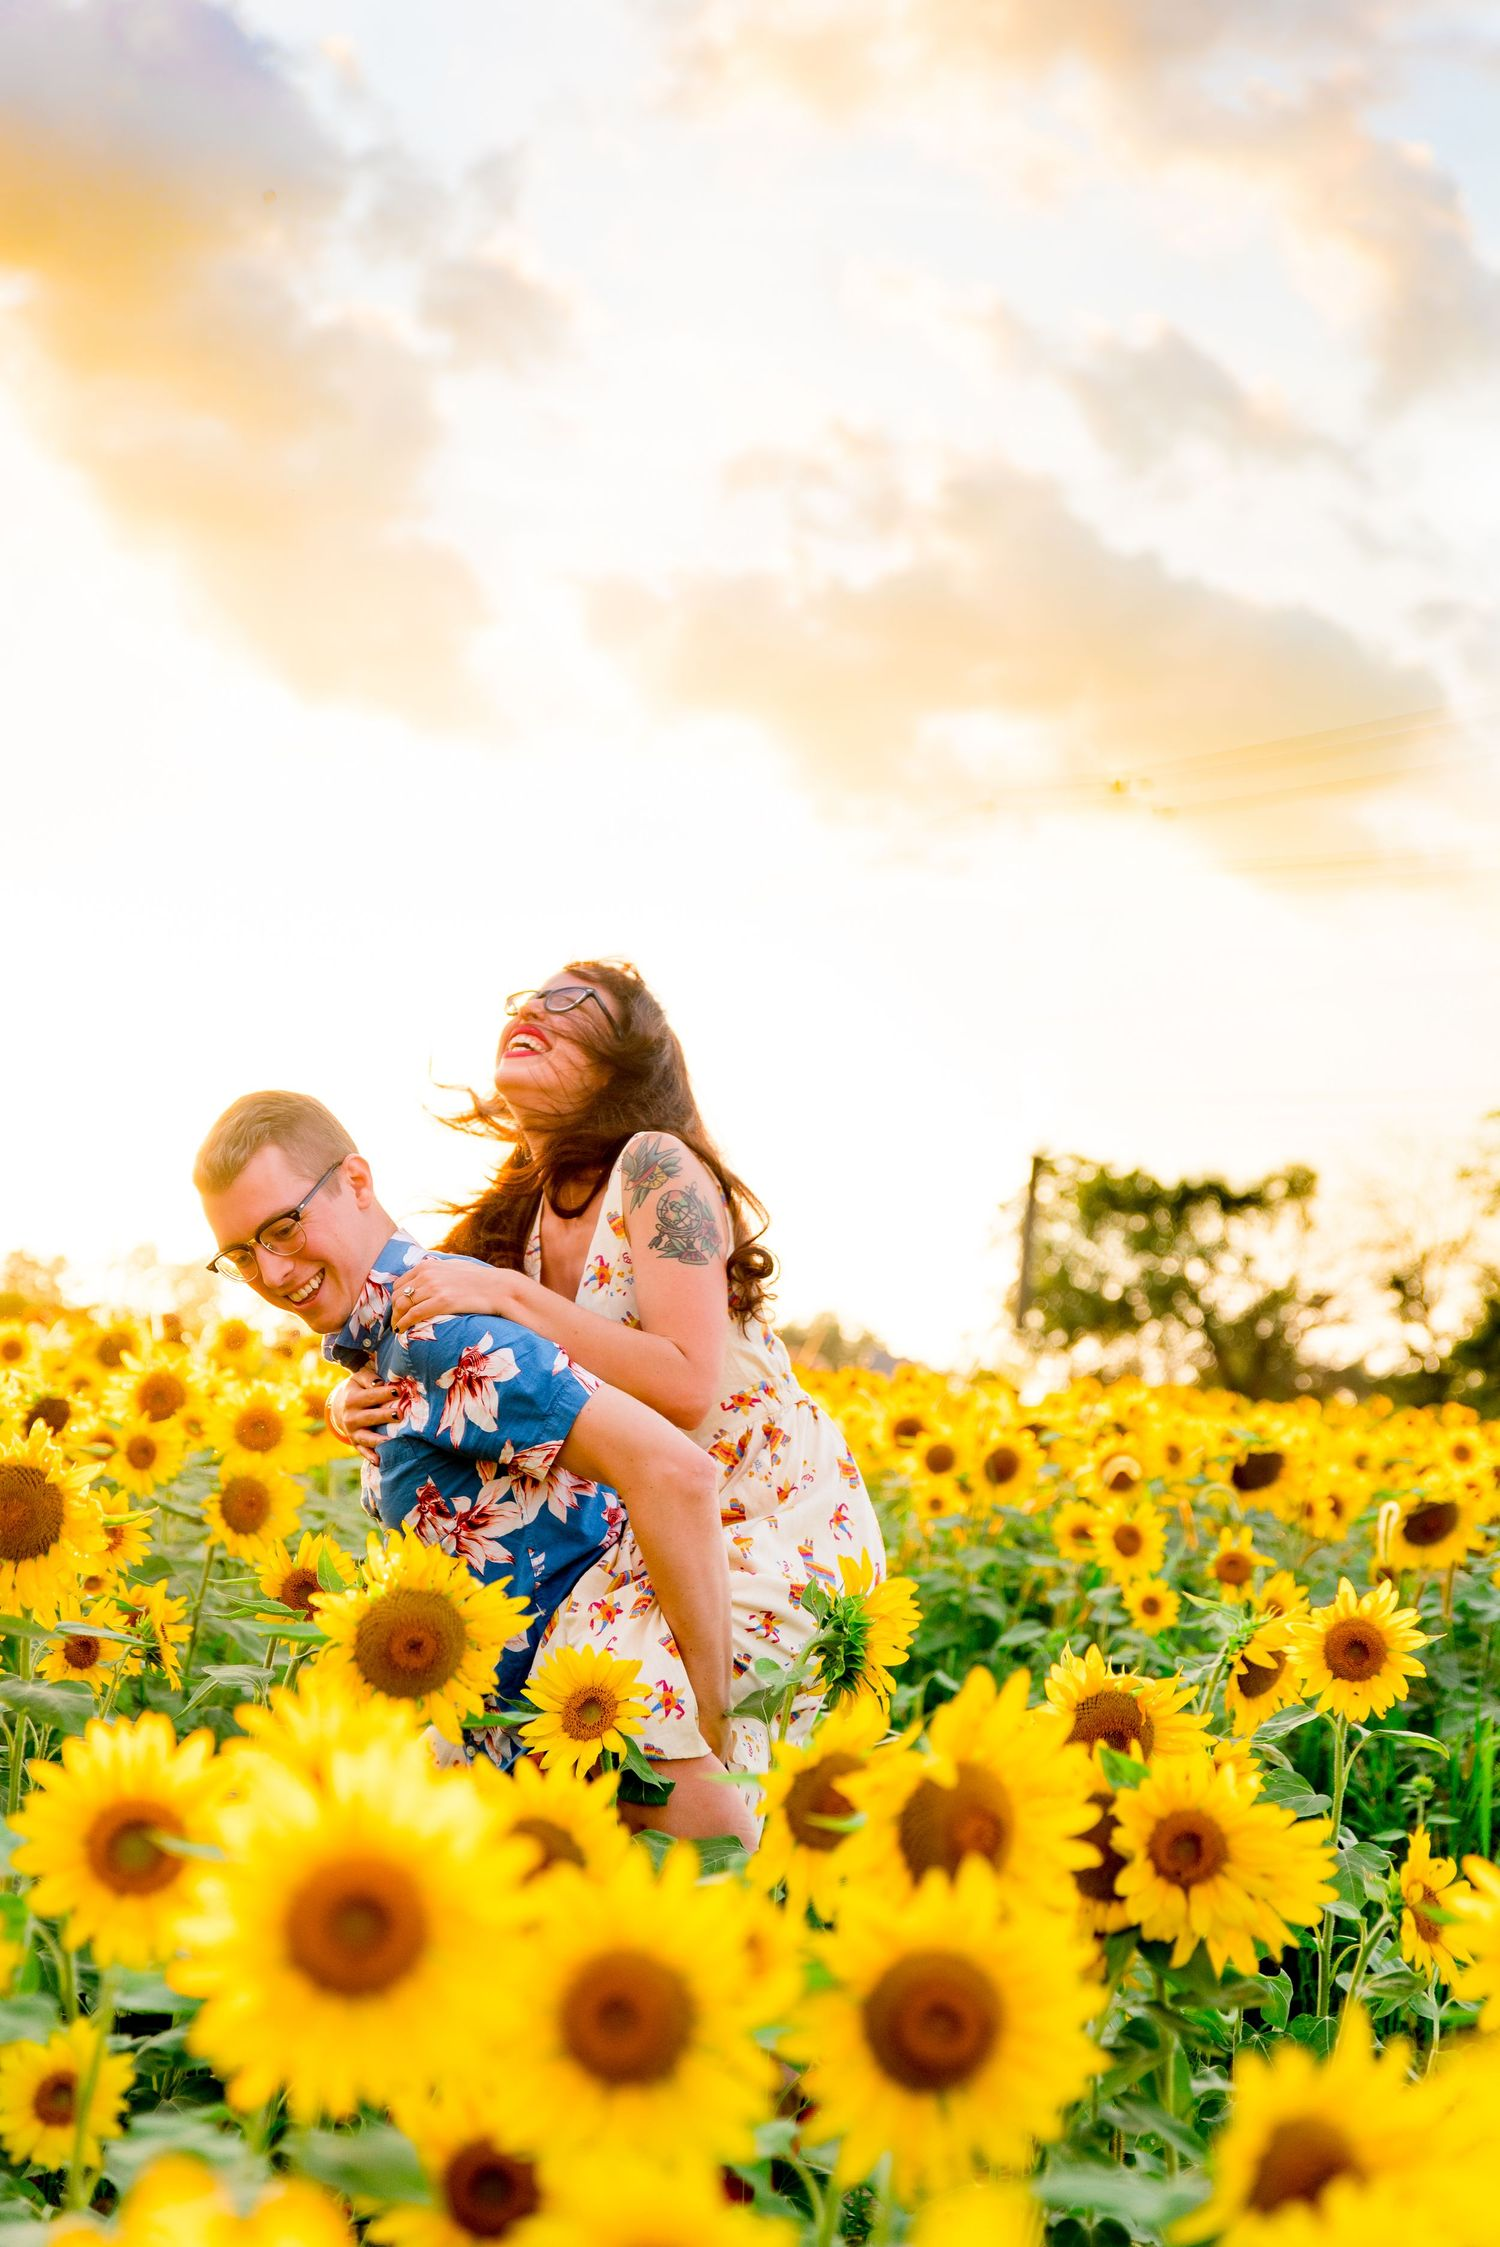 laughing engaged couple doing a piggyback ride in a sunflower field at sunset in Chicago